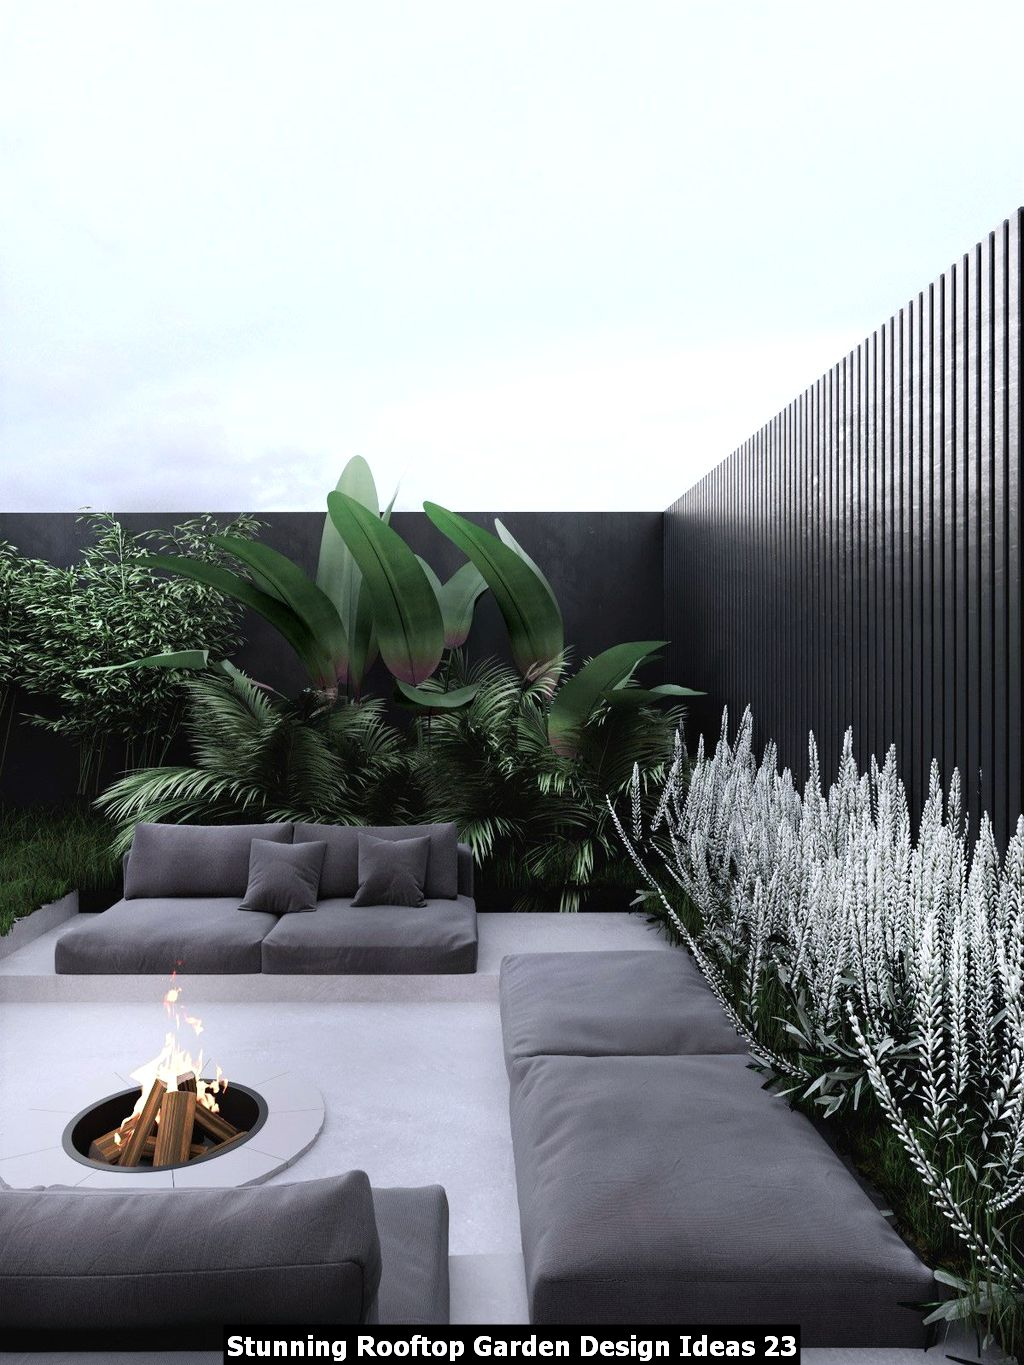 Stunning Rooftop Garden Design Ideas 23